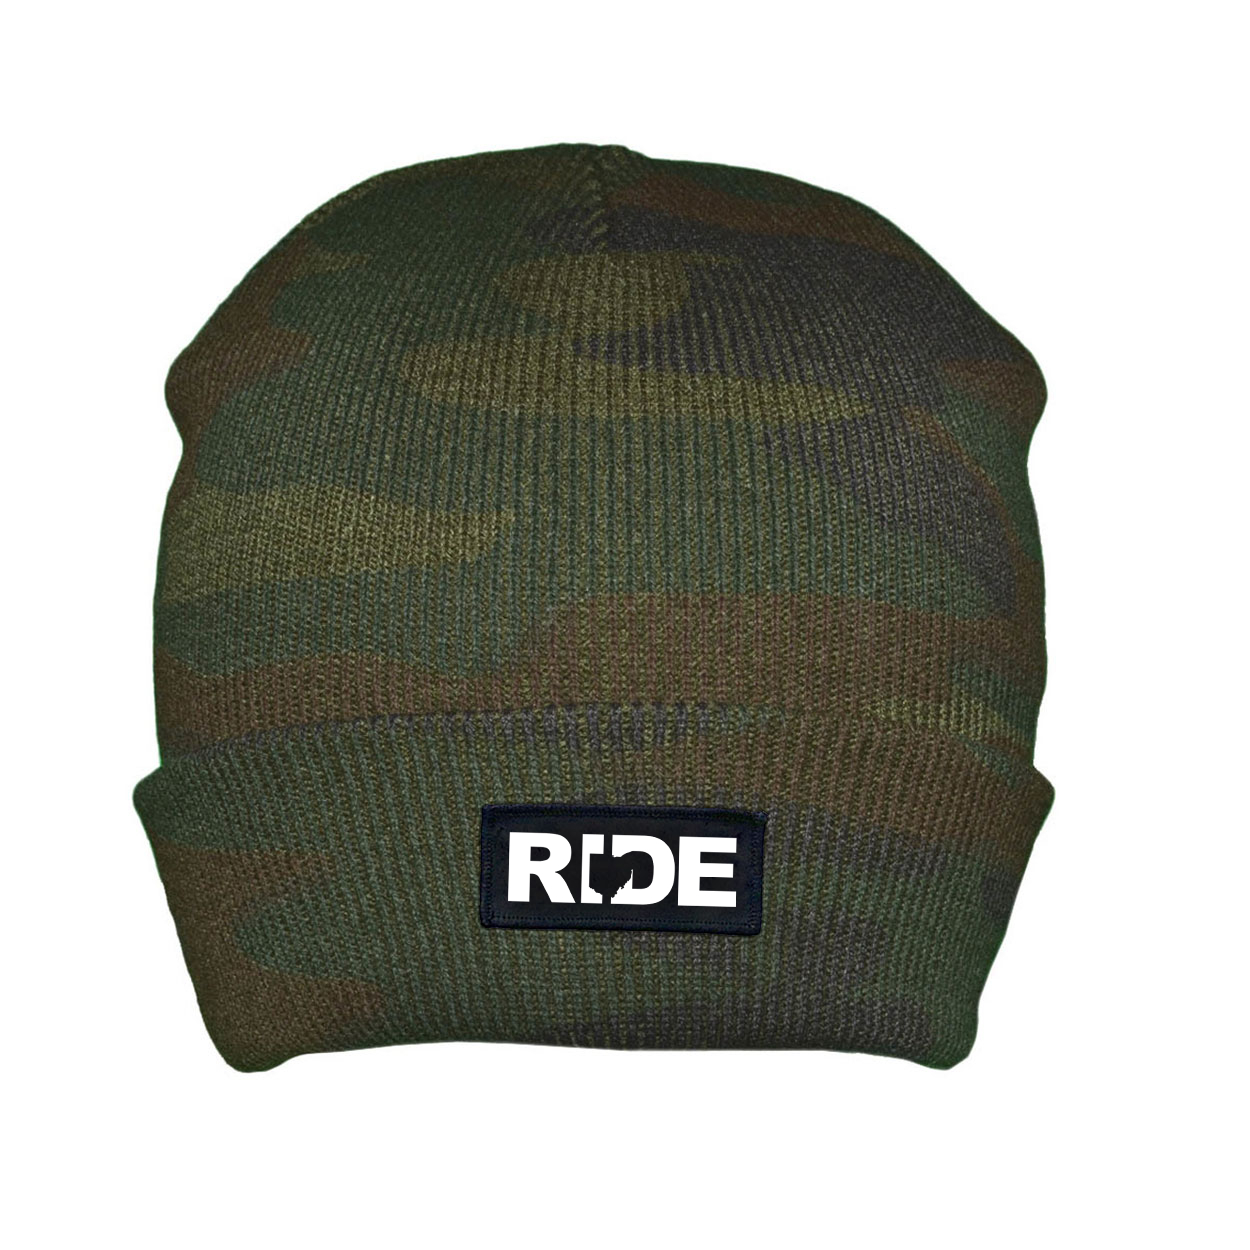 Ride Ohio Night Out Woven Patch Roll Up Skully Beanie Camo (White Logo)